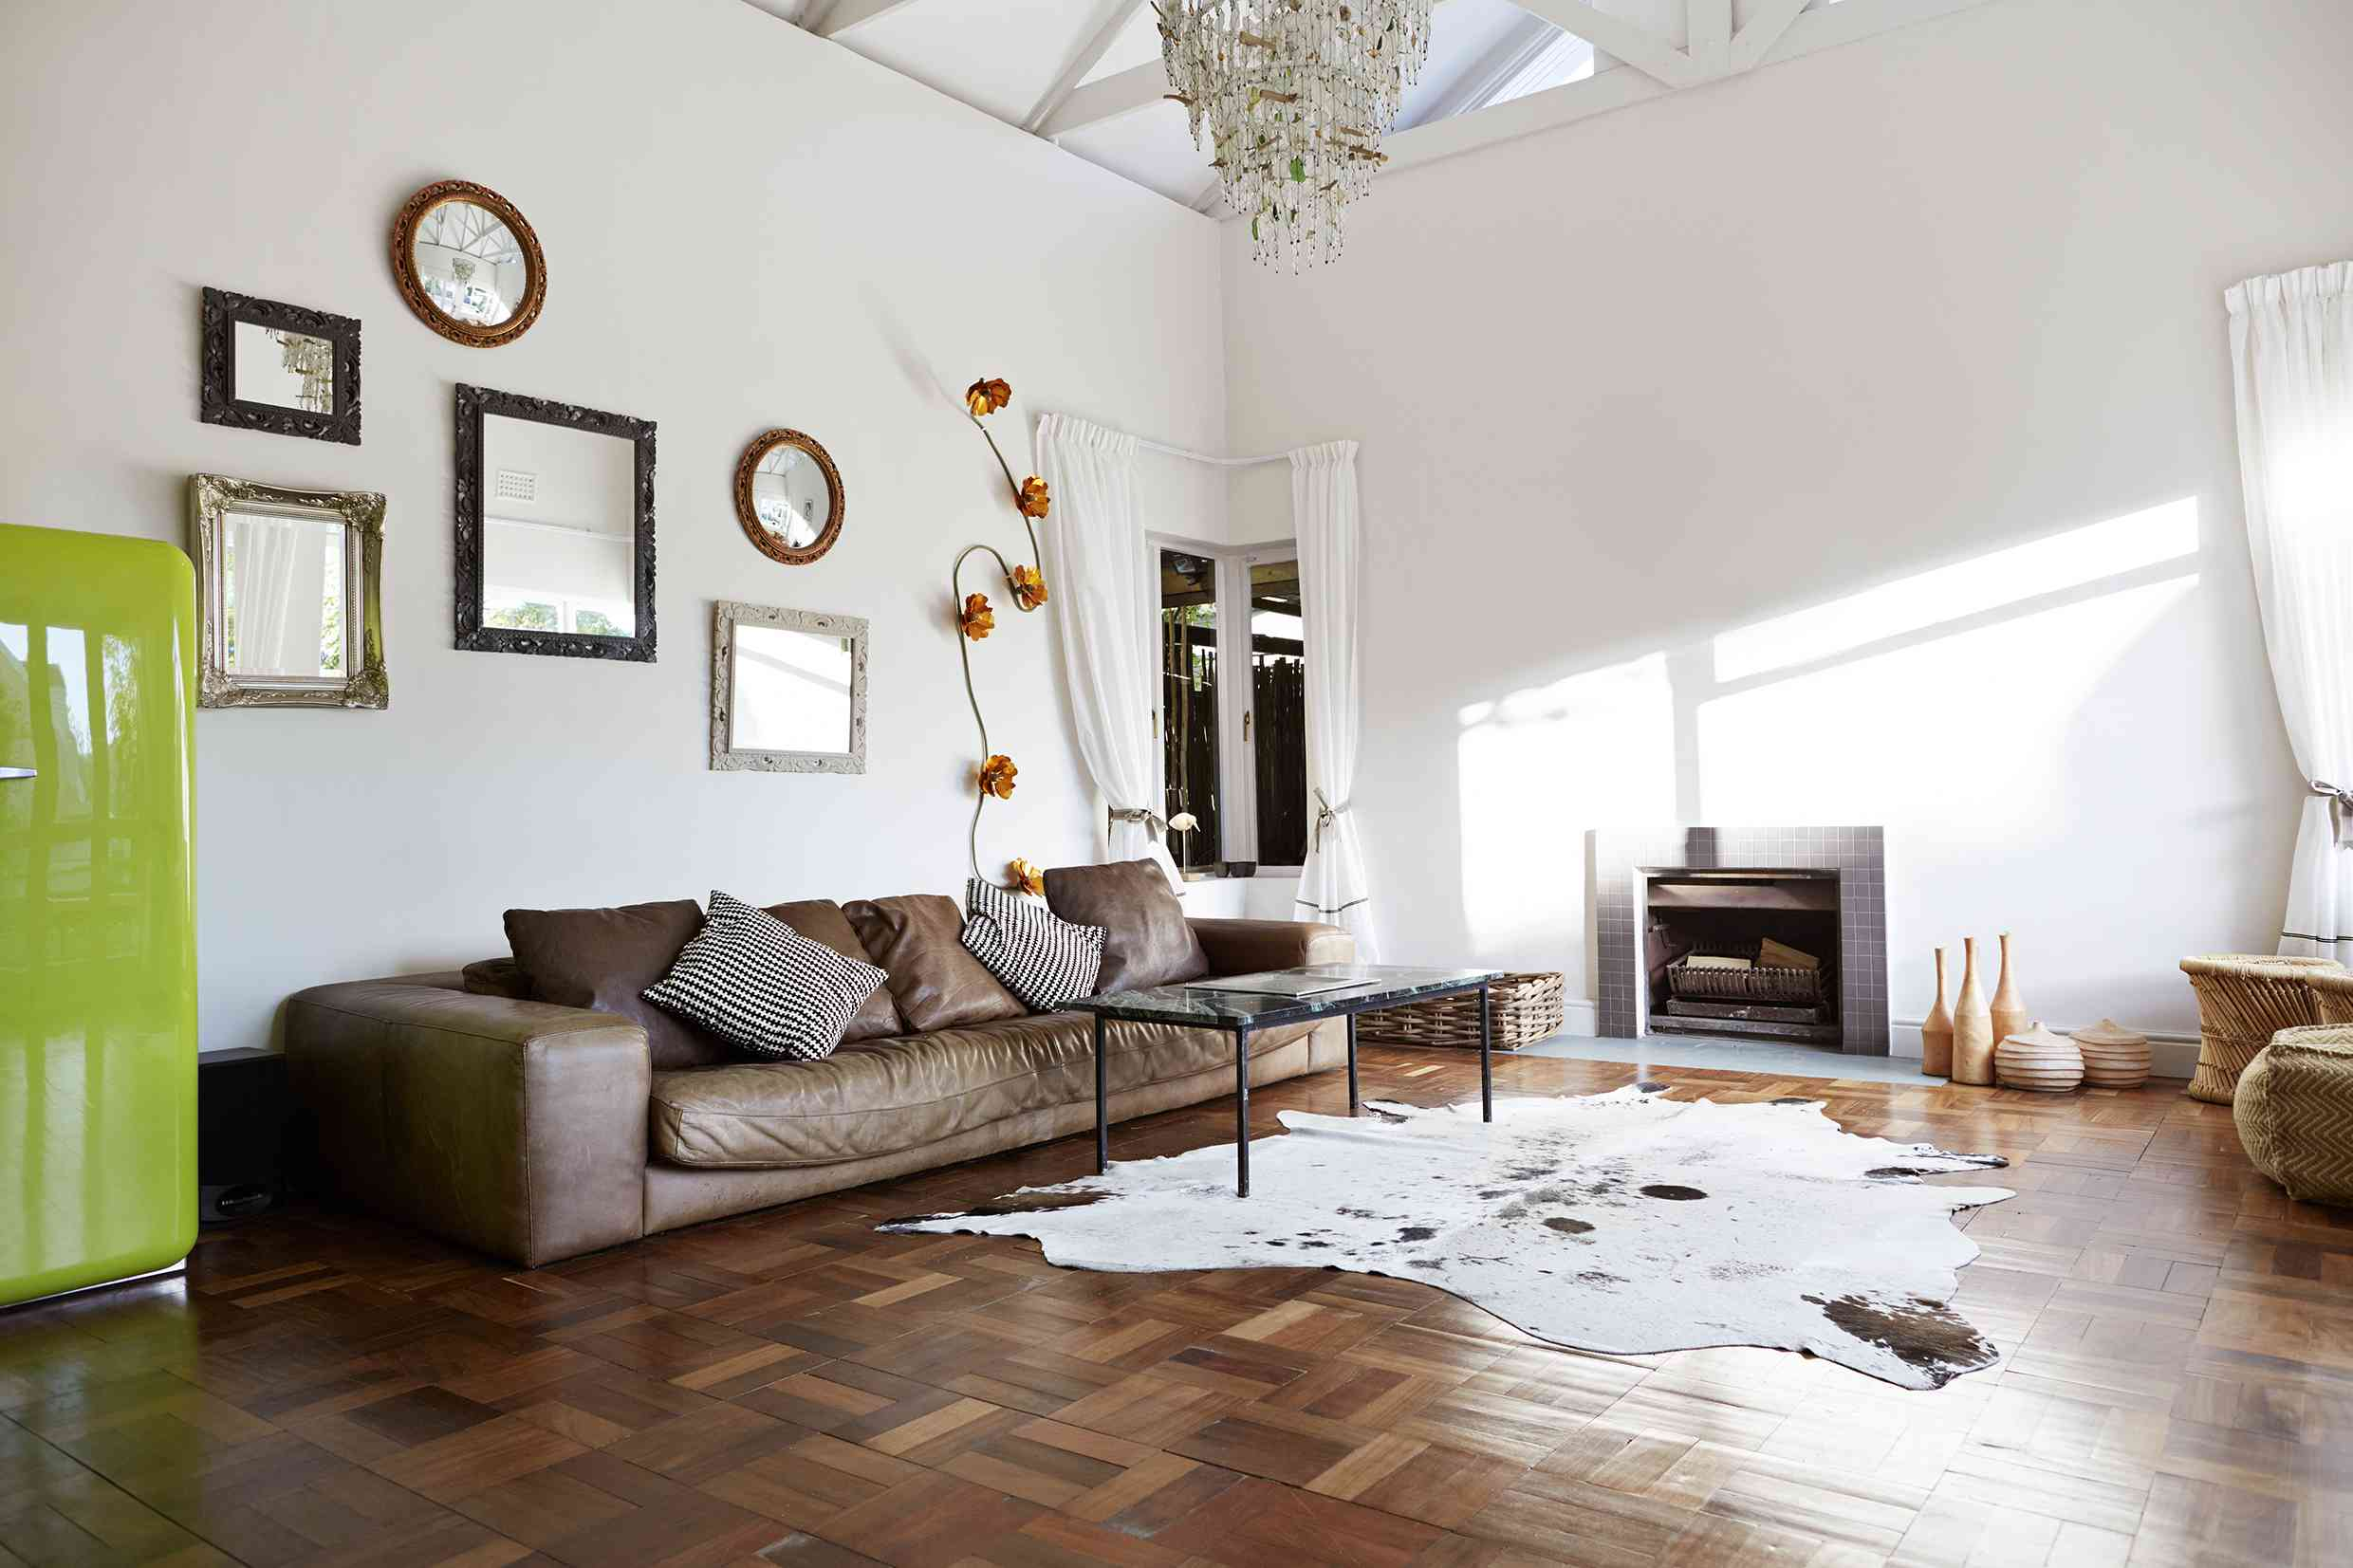 Accents such as pillows and rugs help update the look of your home